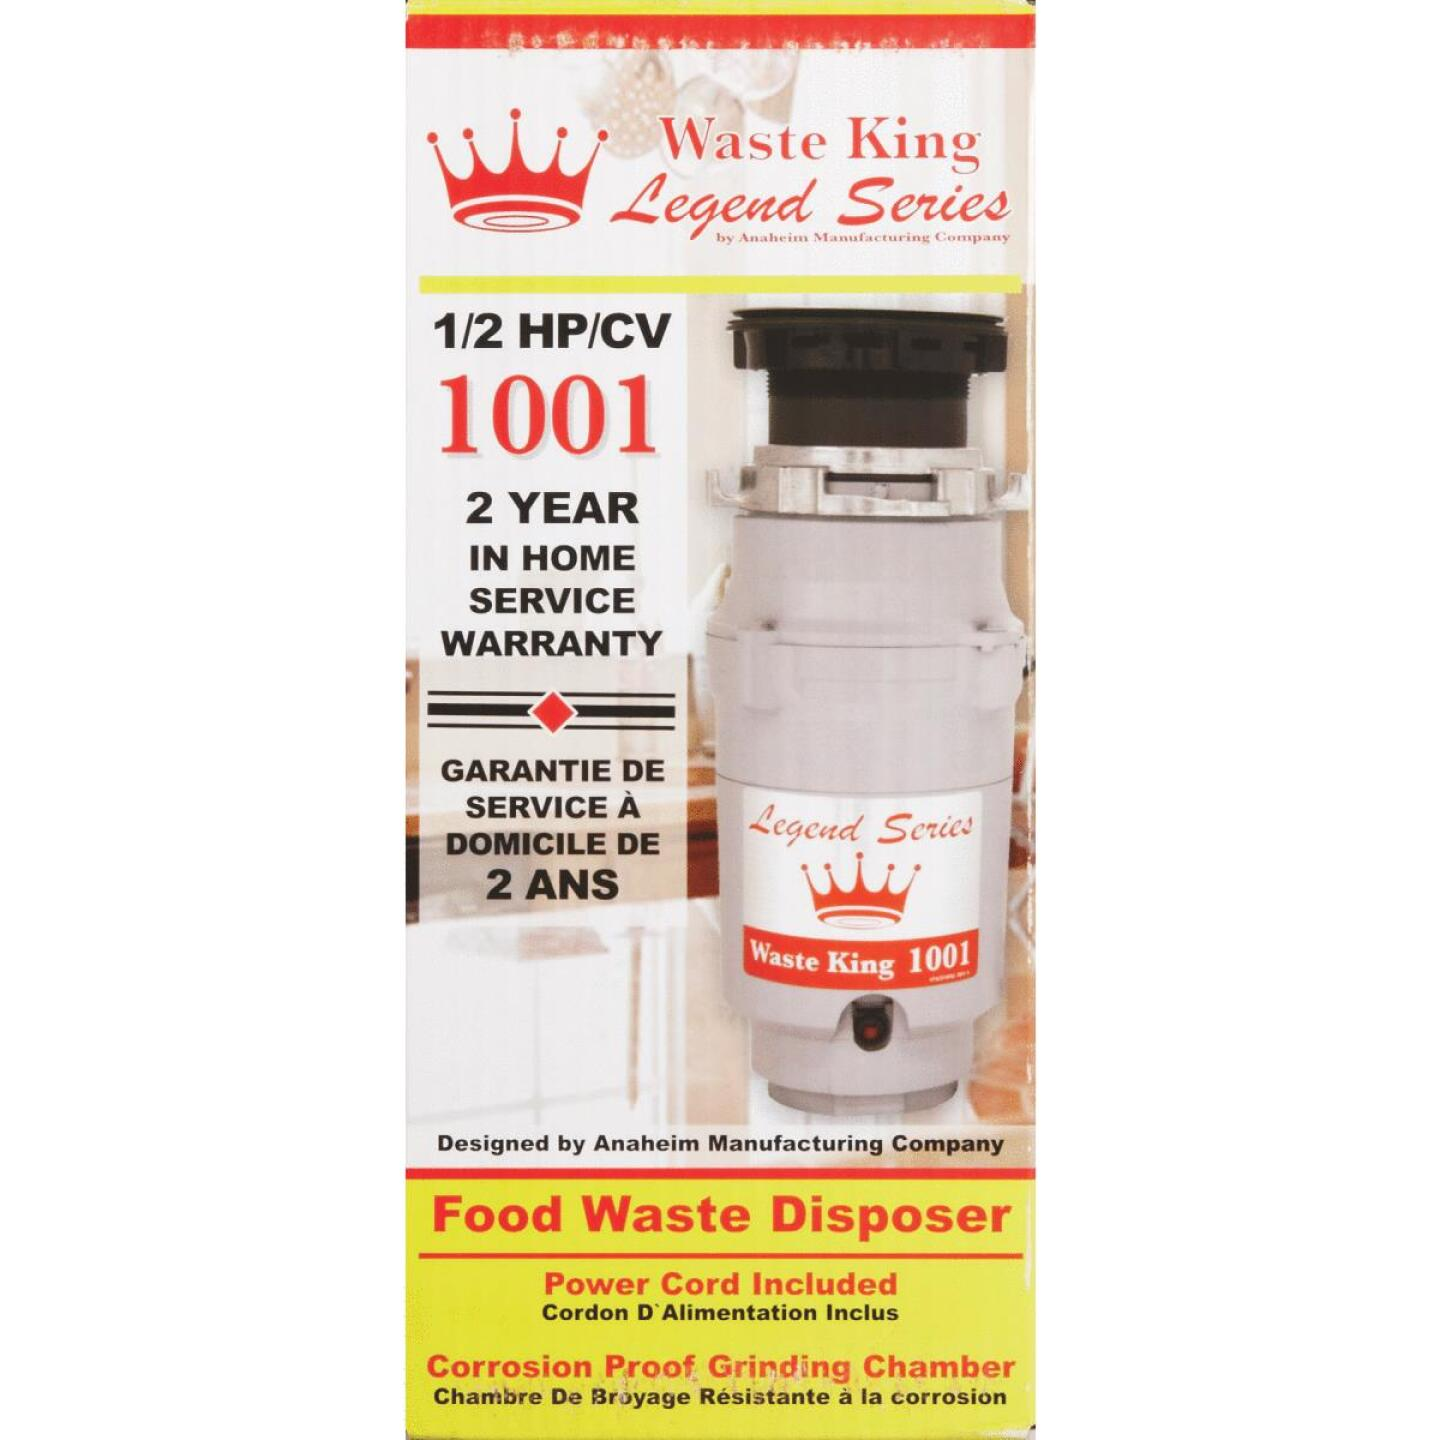 Waste King Legend Series 1/2 HP Garbage Disposal, 2 Year Warranty Image 2